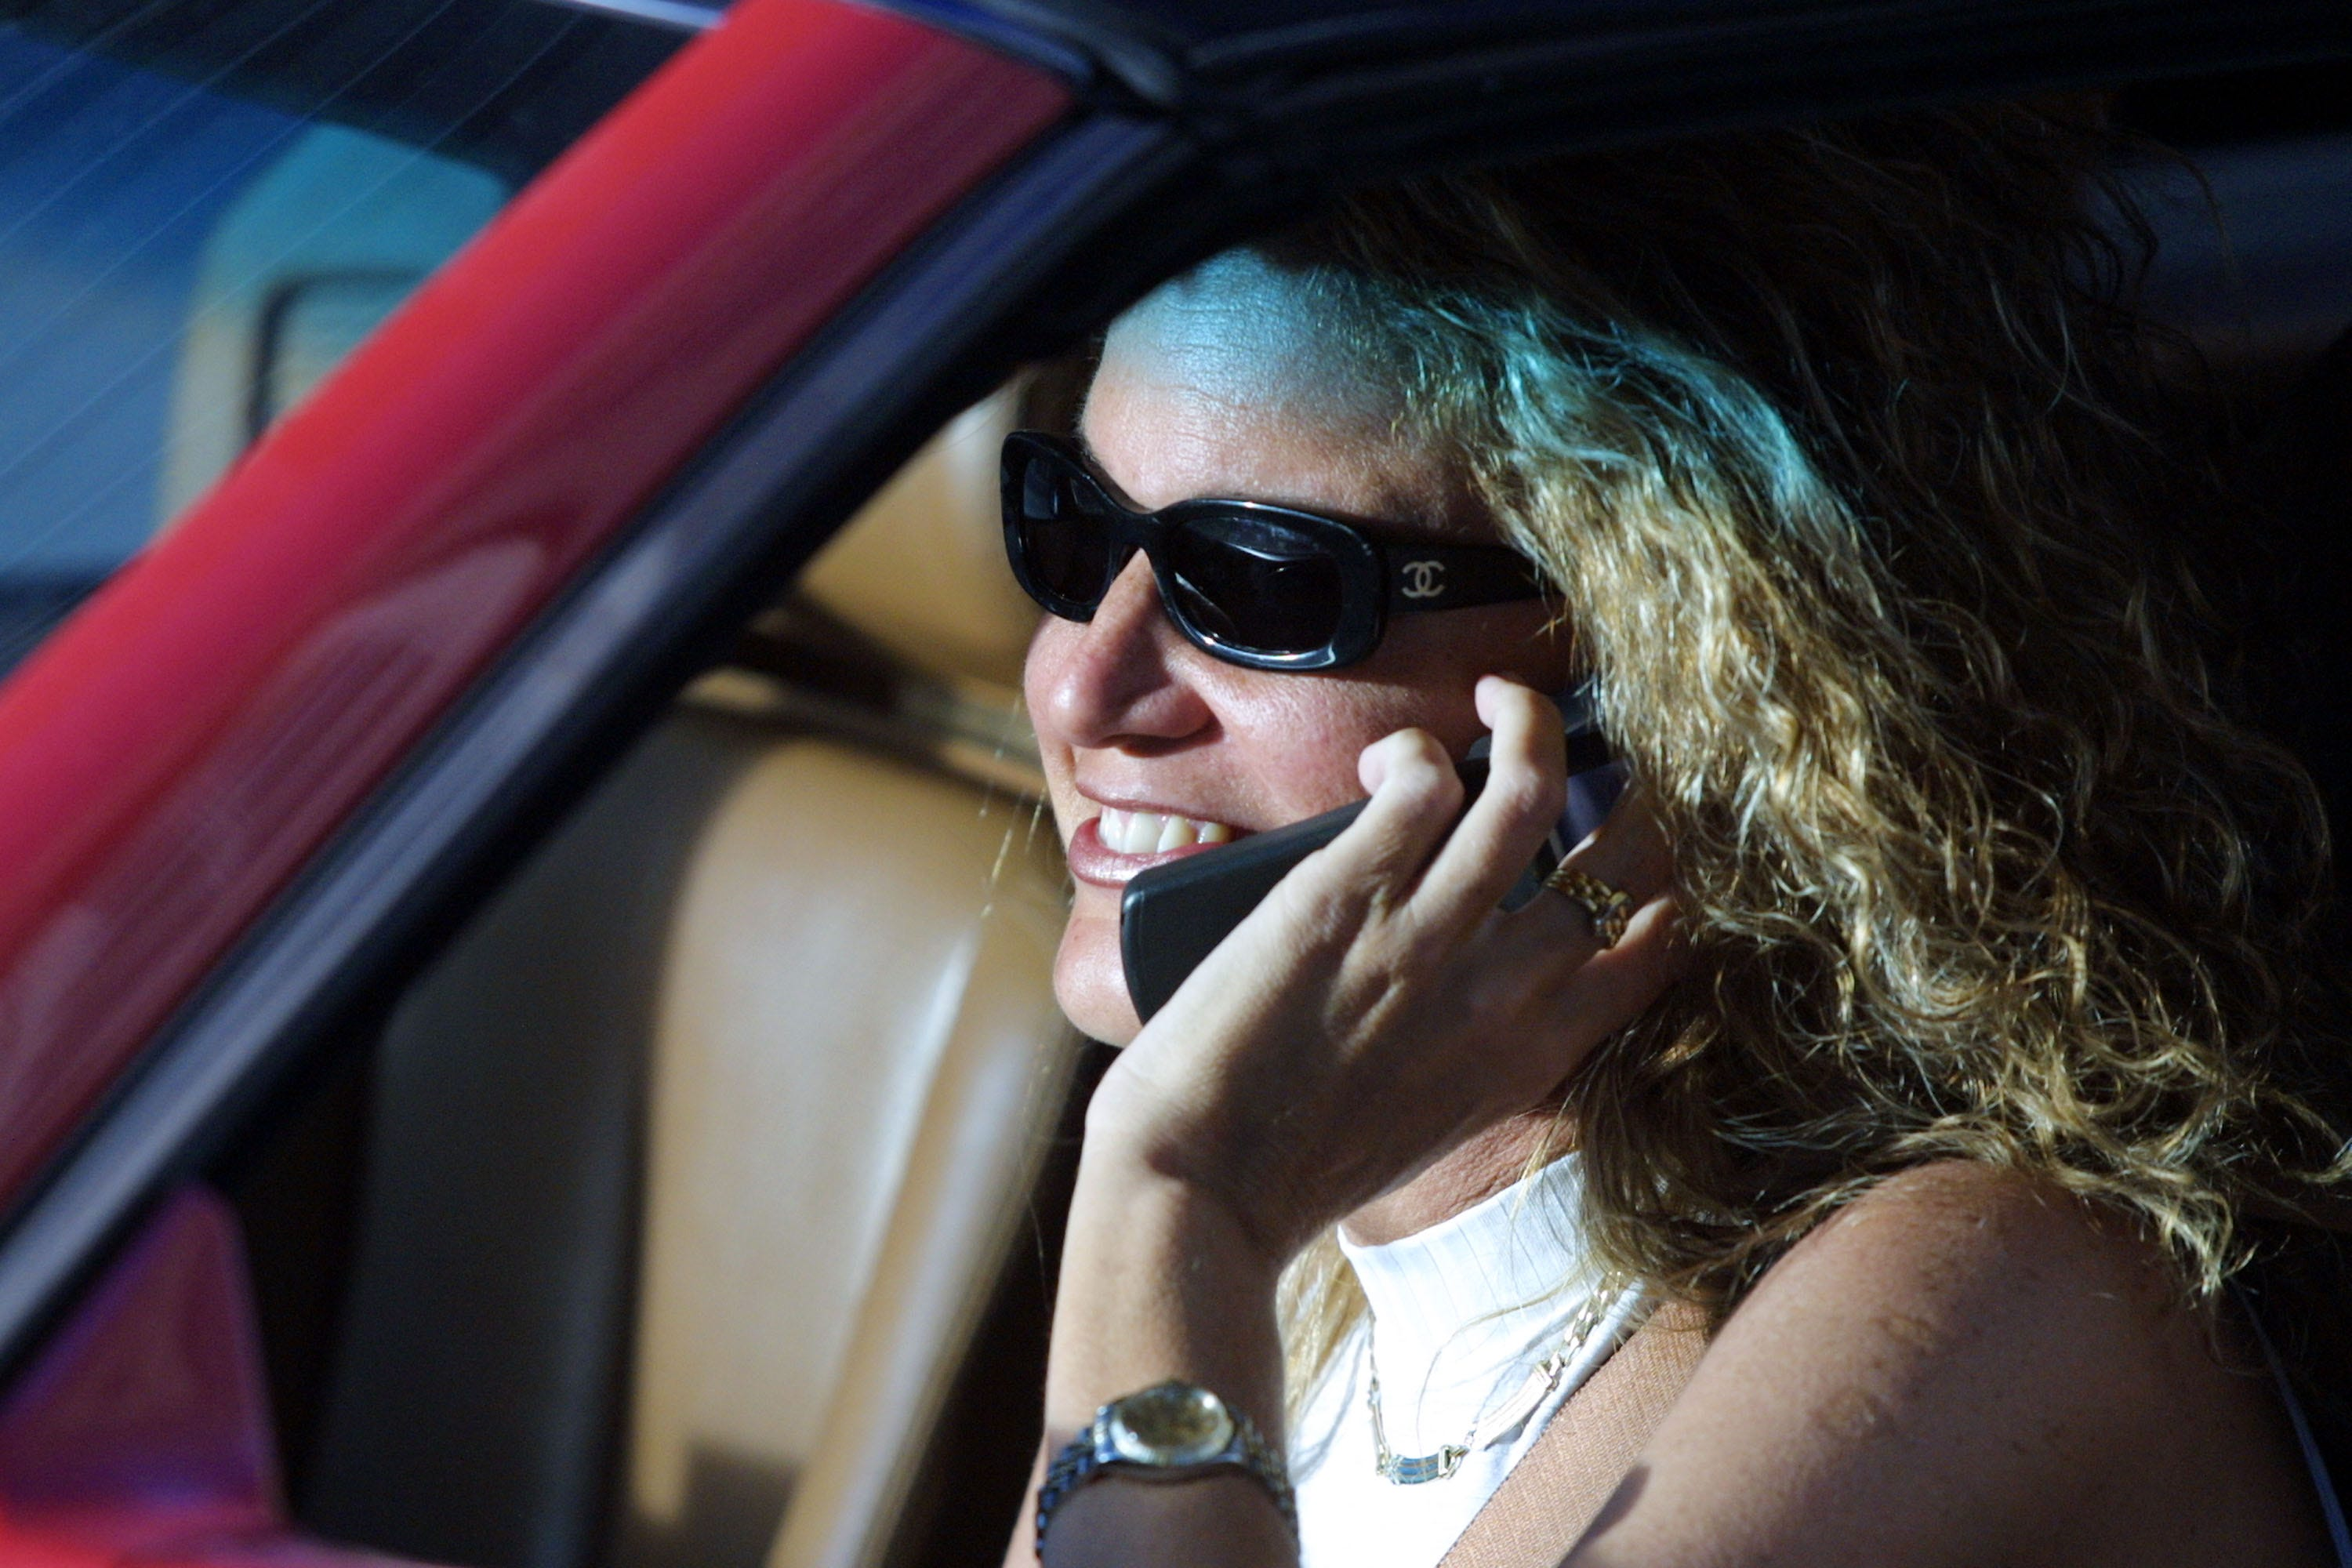 This new smartphone feature should be used by every driver, from teen to seasoned commuter